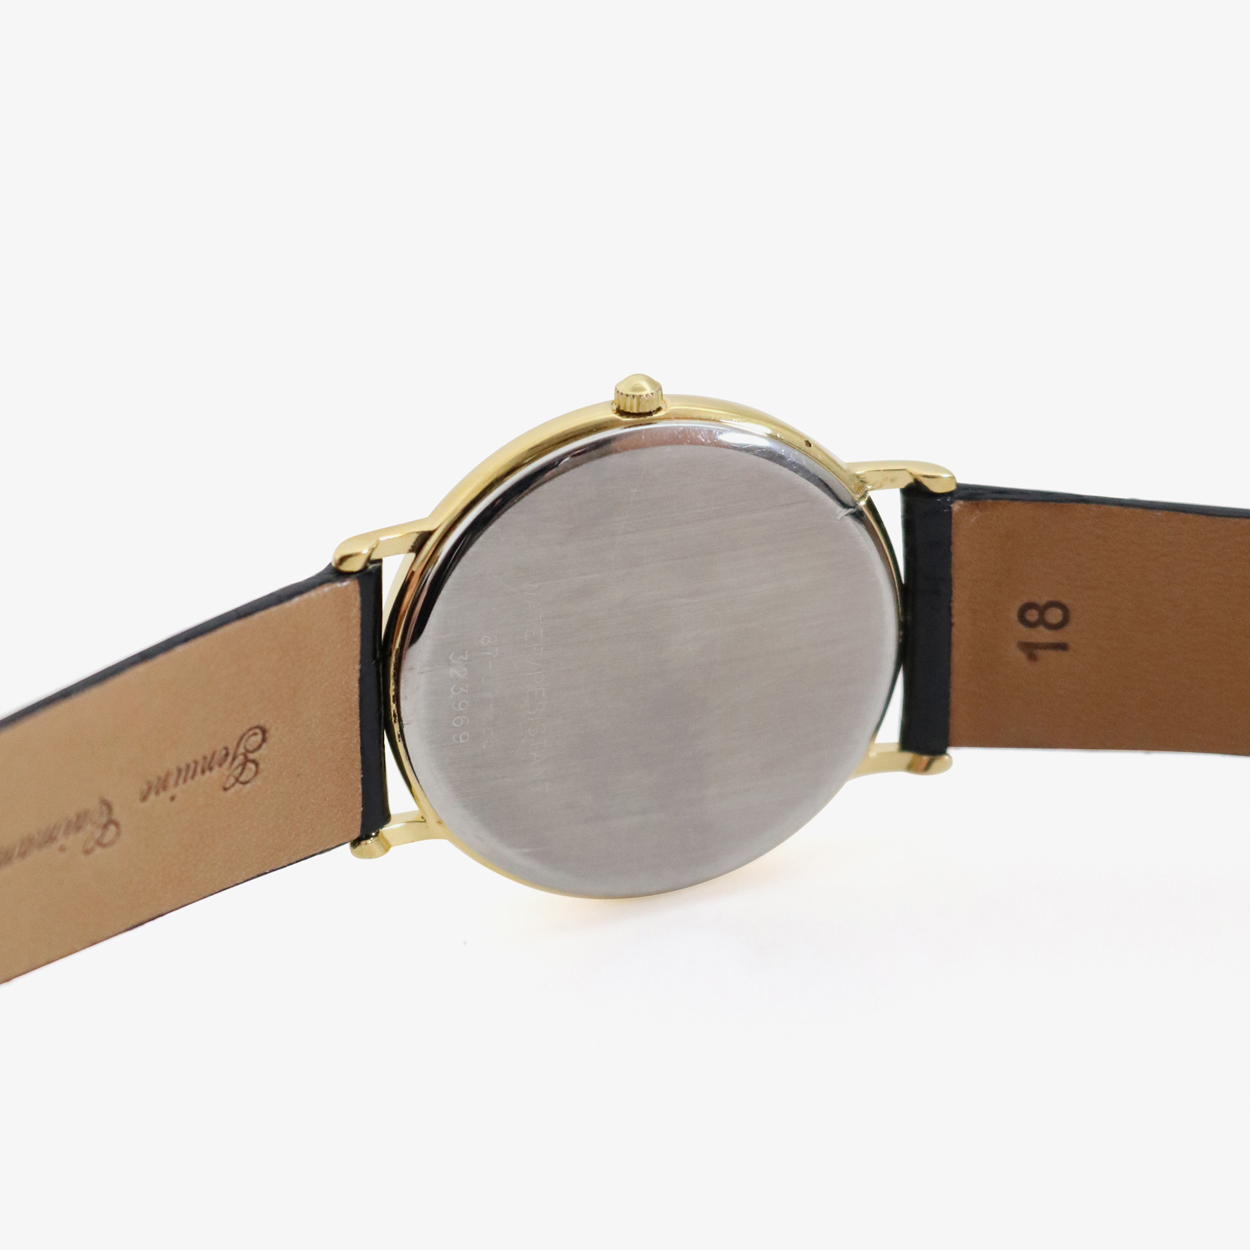 SOLD OUT|Tiffany & Co.|Roman GP/SS - 90'S|OTHER VINTAGE WATCH